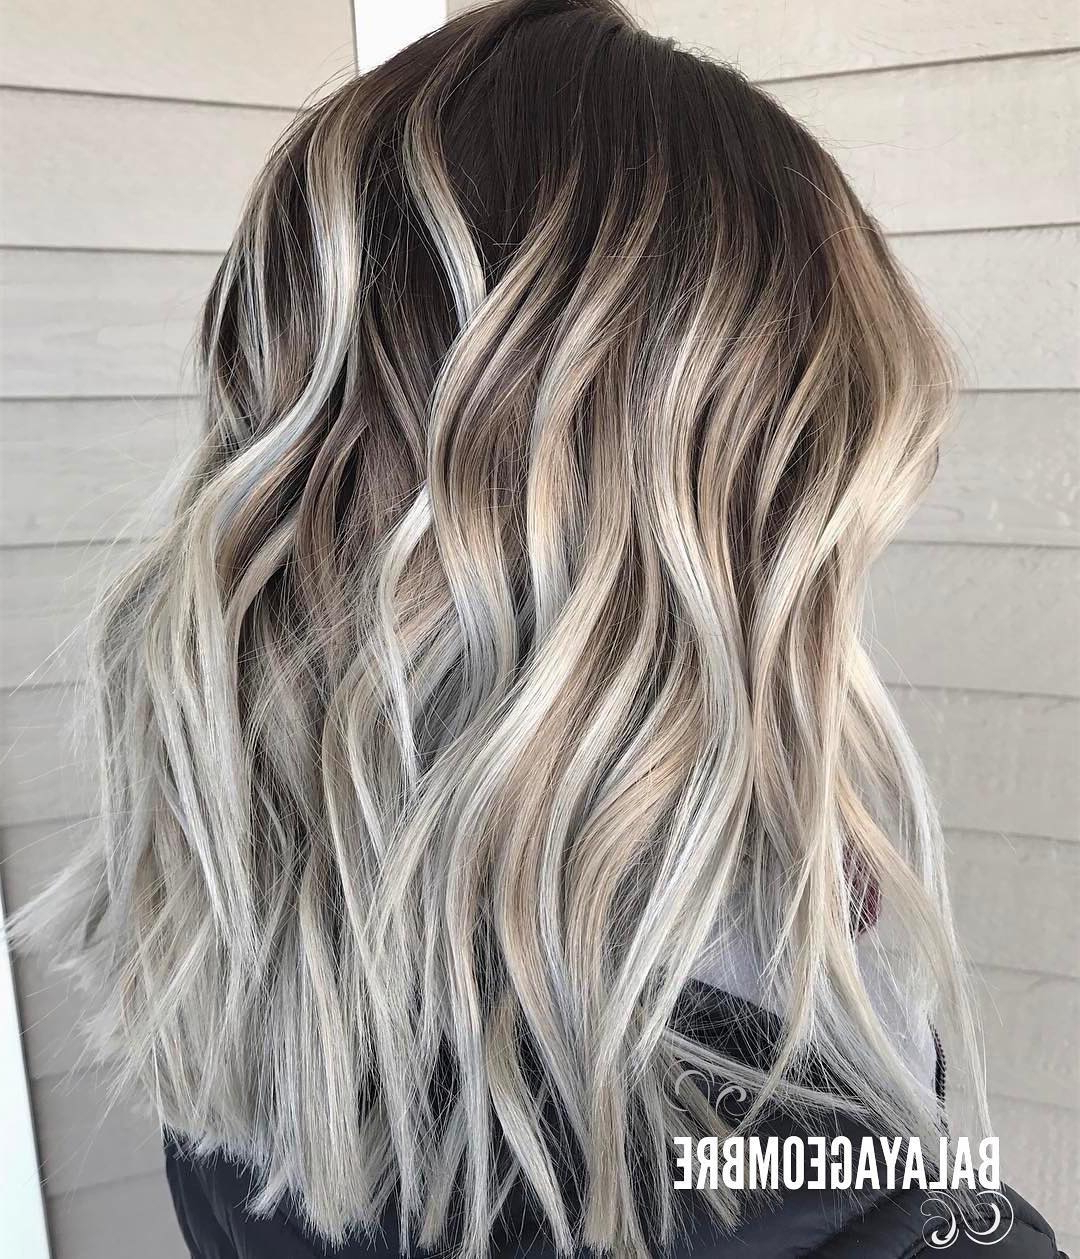 Fashionable Blonde Choppy Haircuts For Medium Hair For 10 Best Medium Layered Hairstyles 2020 – Brown & Ash Blonde (View 11 of 20)